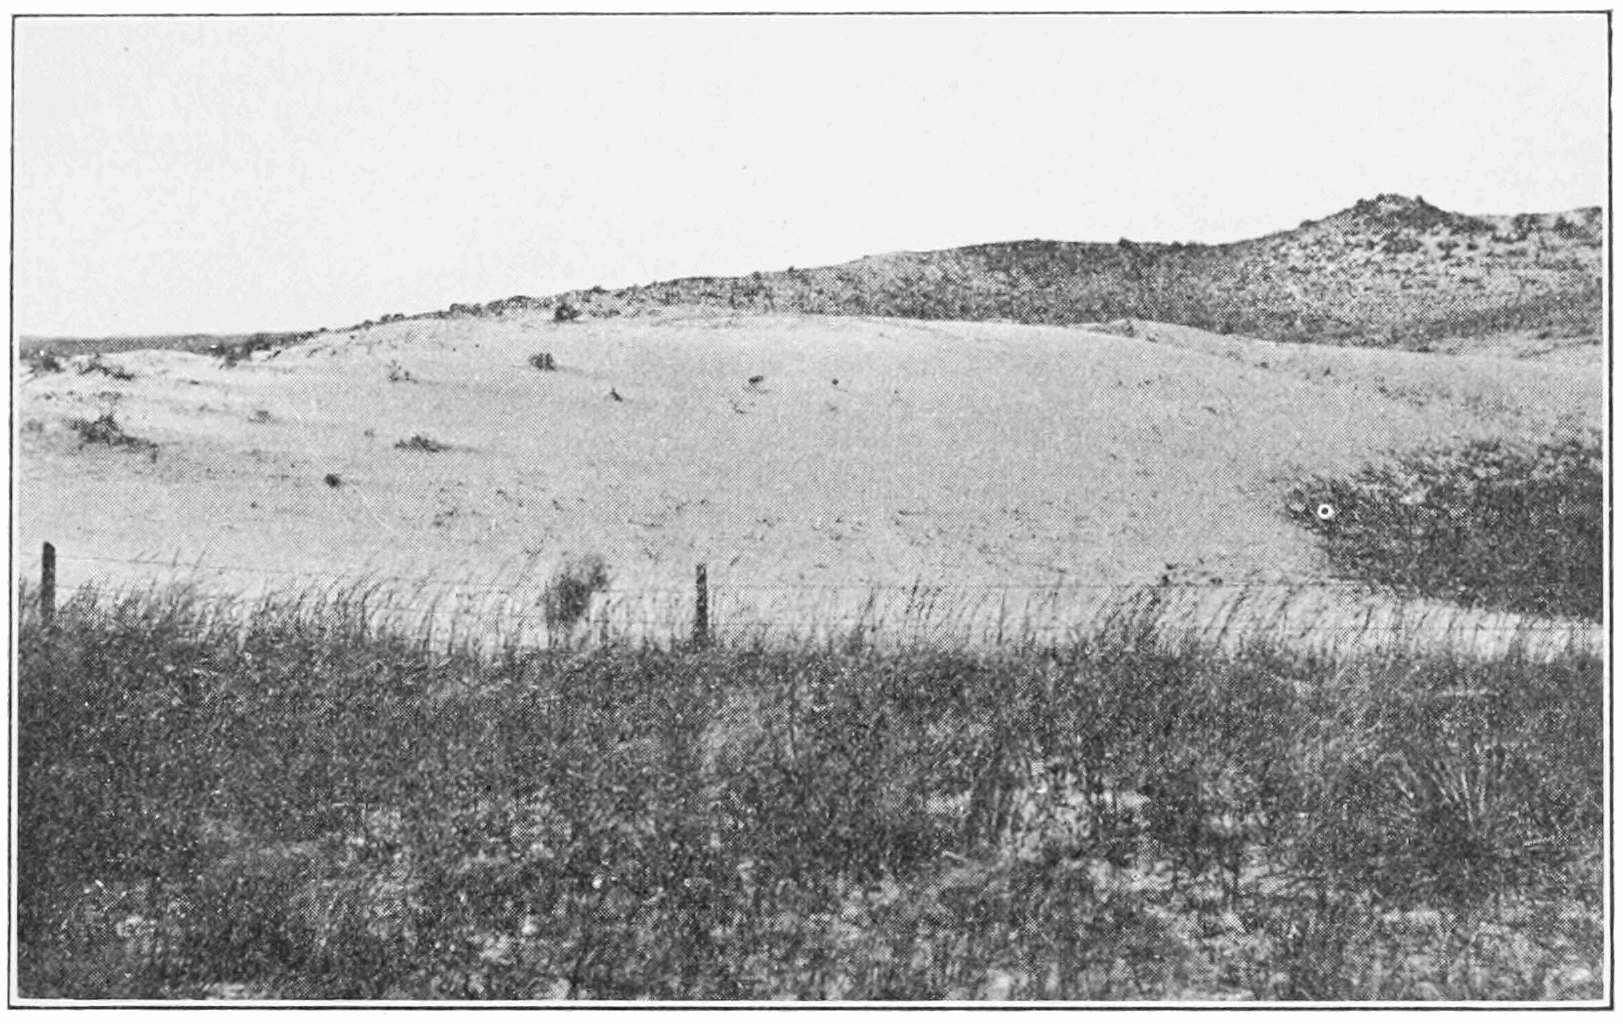 PSM V80 D219 Land damaged by overgrazing.png